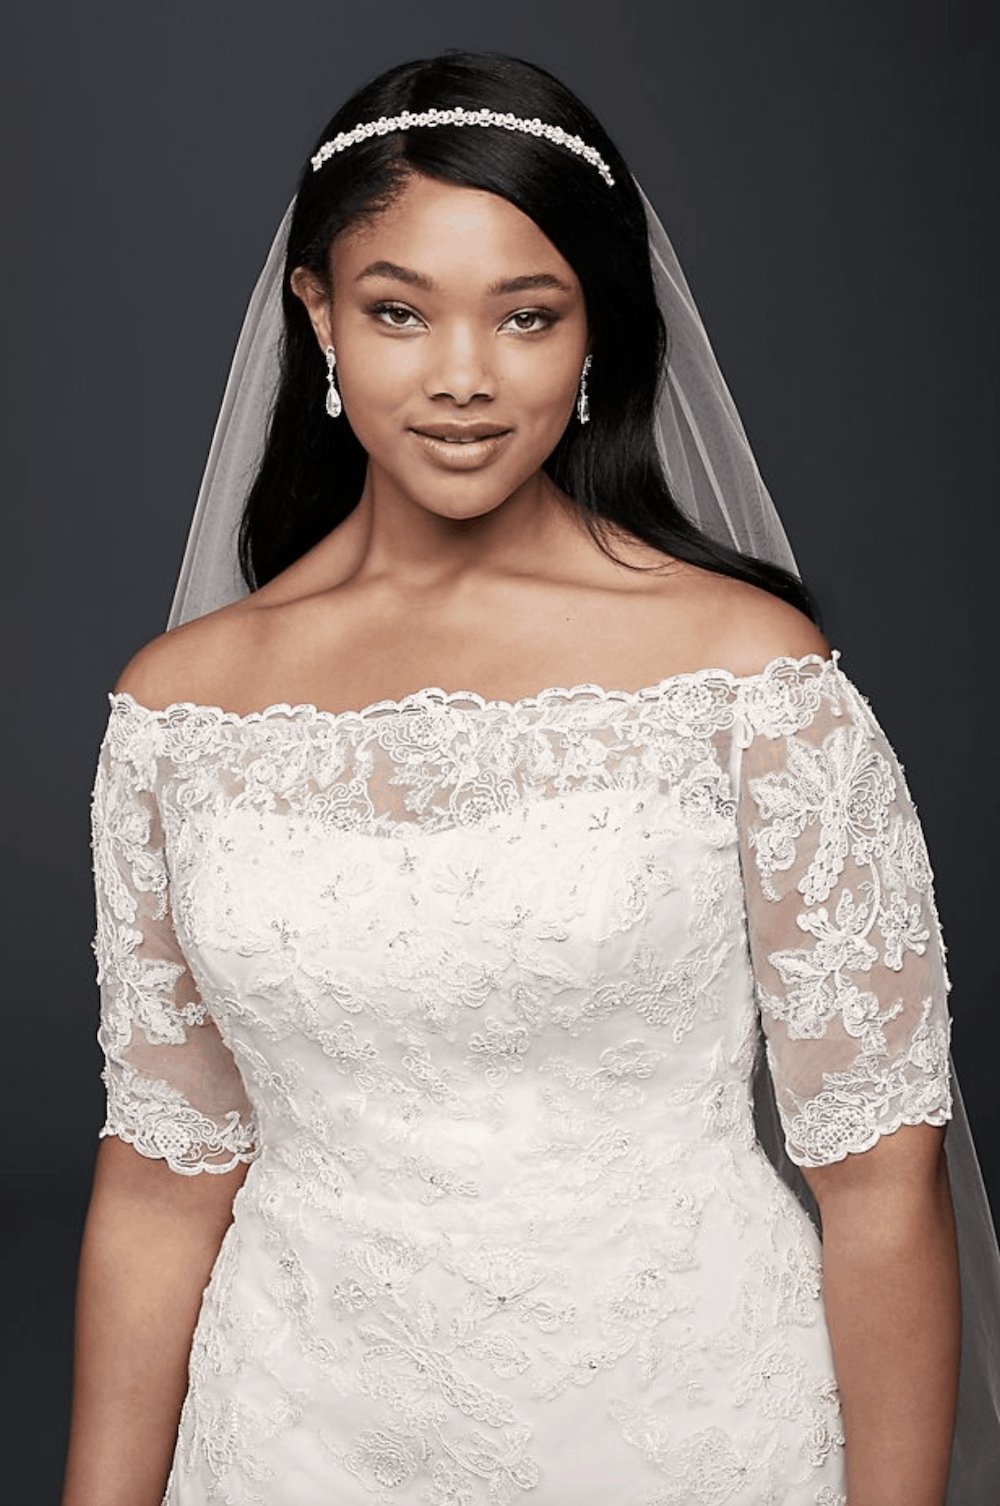 Jewel 3:4 Sleeve Plus Size Wedding Dress Plus Size Bridal Gowns with Lace Sleeves